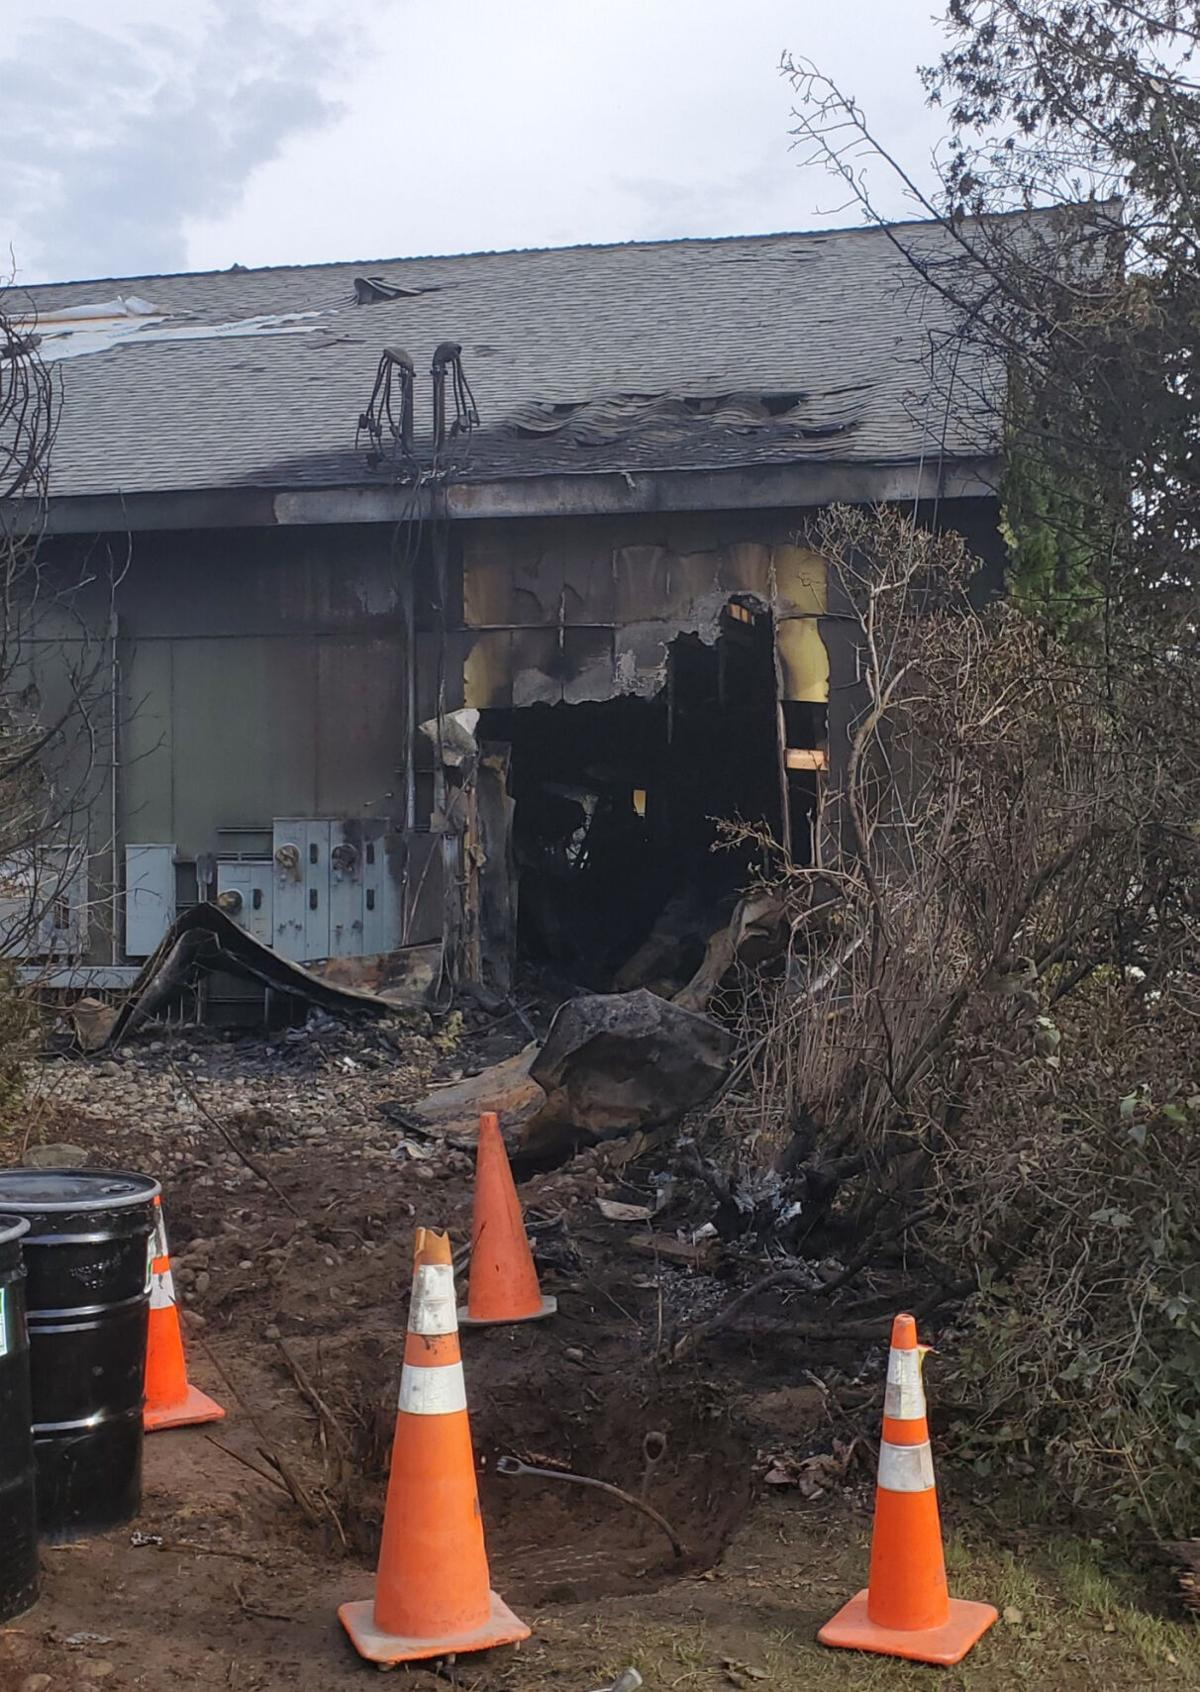 Truck smashes into Morristown's Parkway Express, sparking massive fire